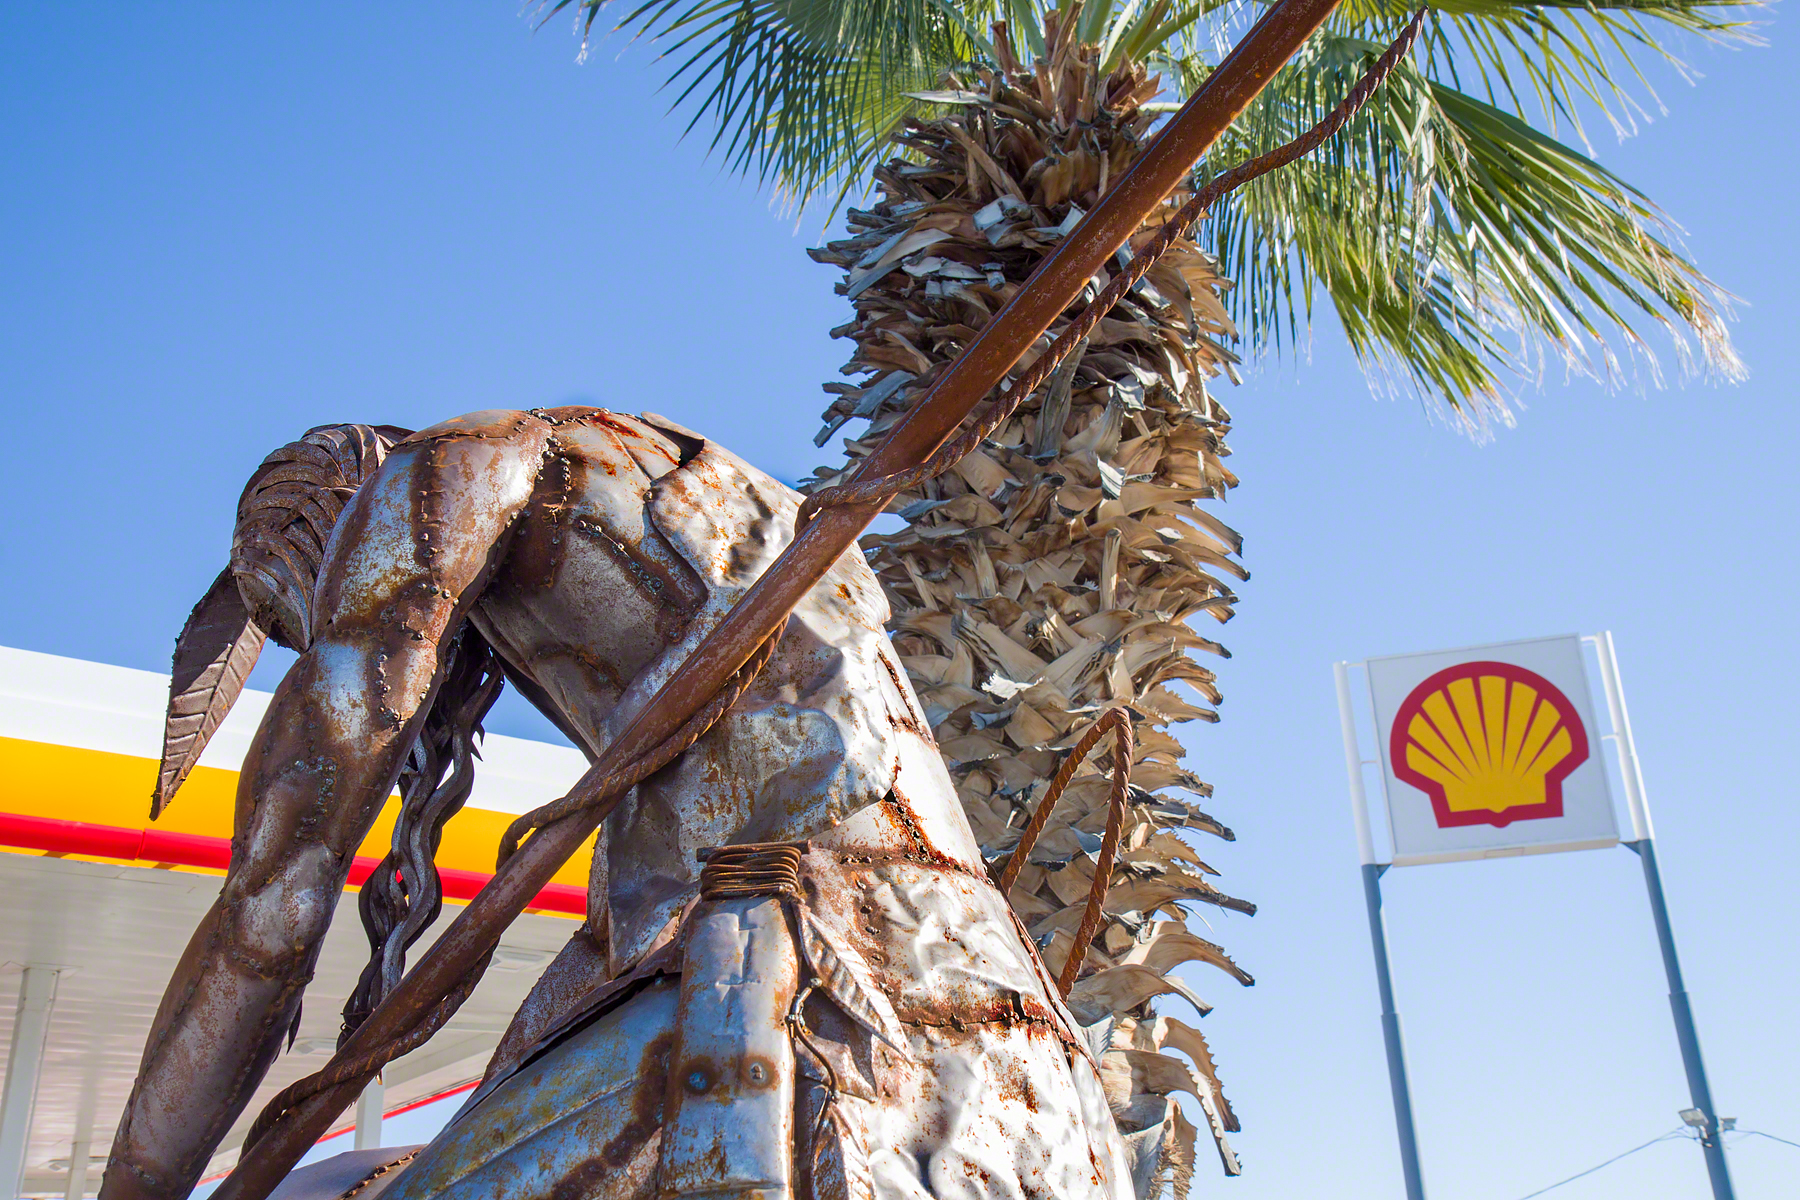 Shell Station, Hila Bend, Arizona